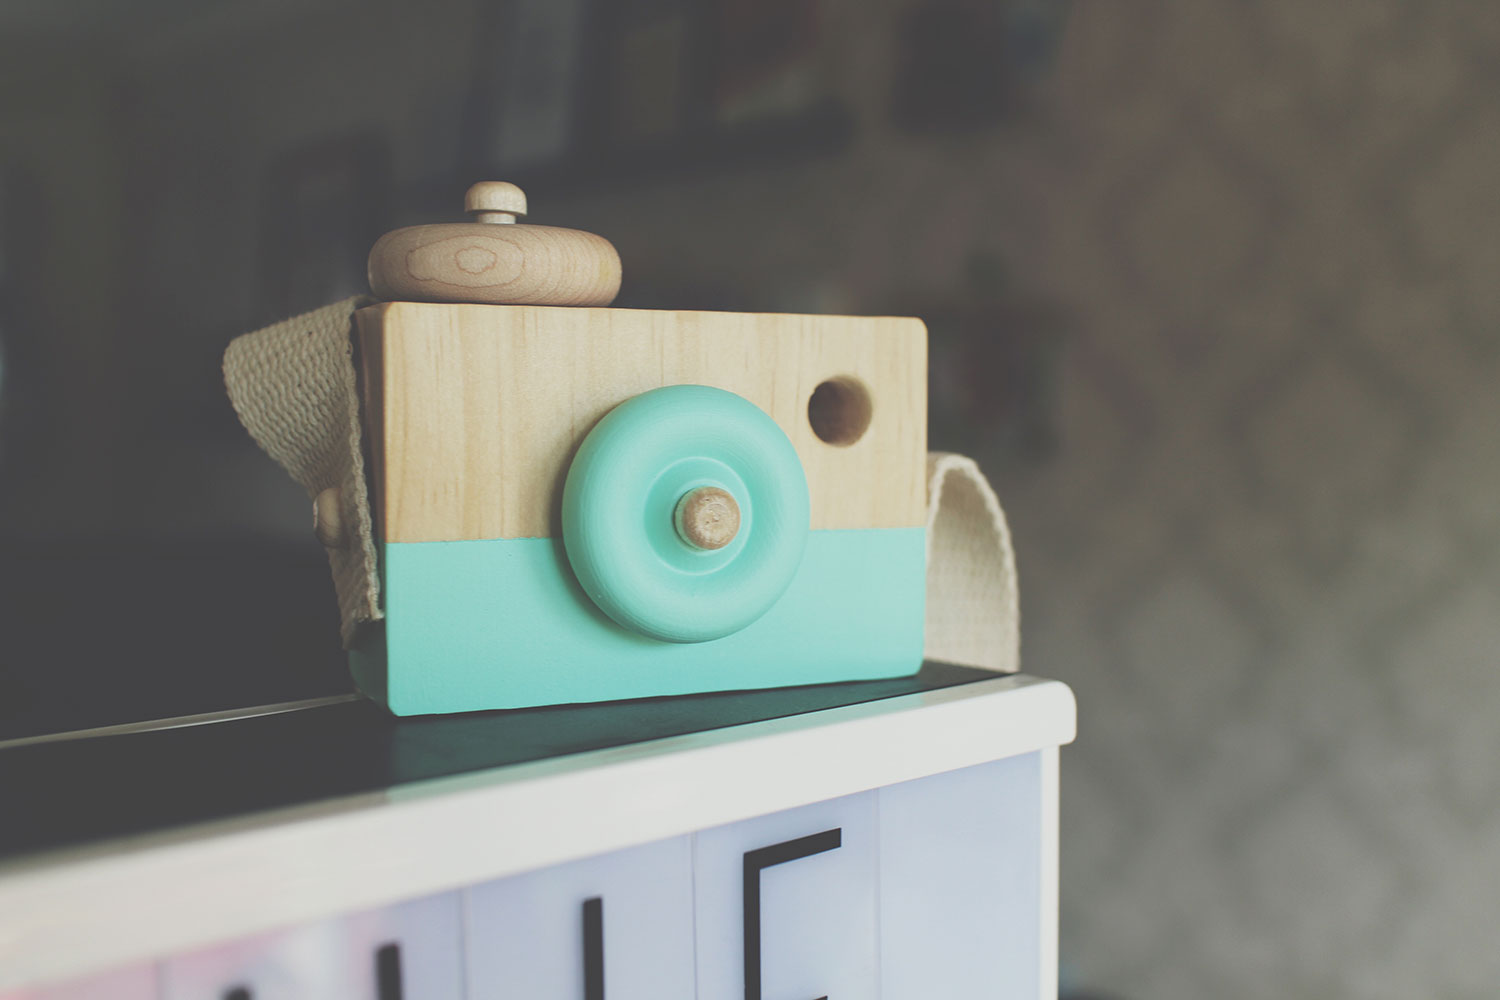 5 of the Best Wooden Toys for Toddlers - Behind the Trees handmade wooden painted camera toy